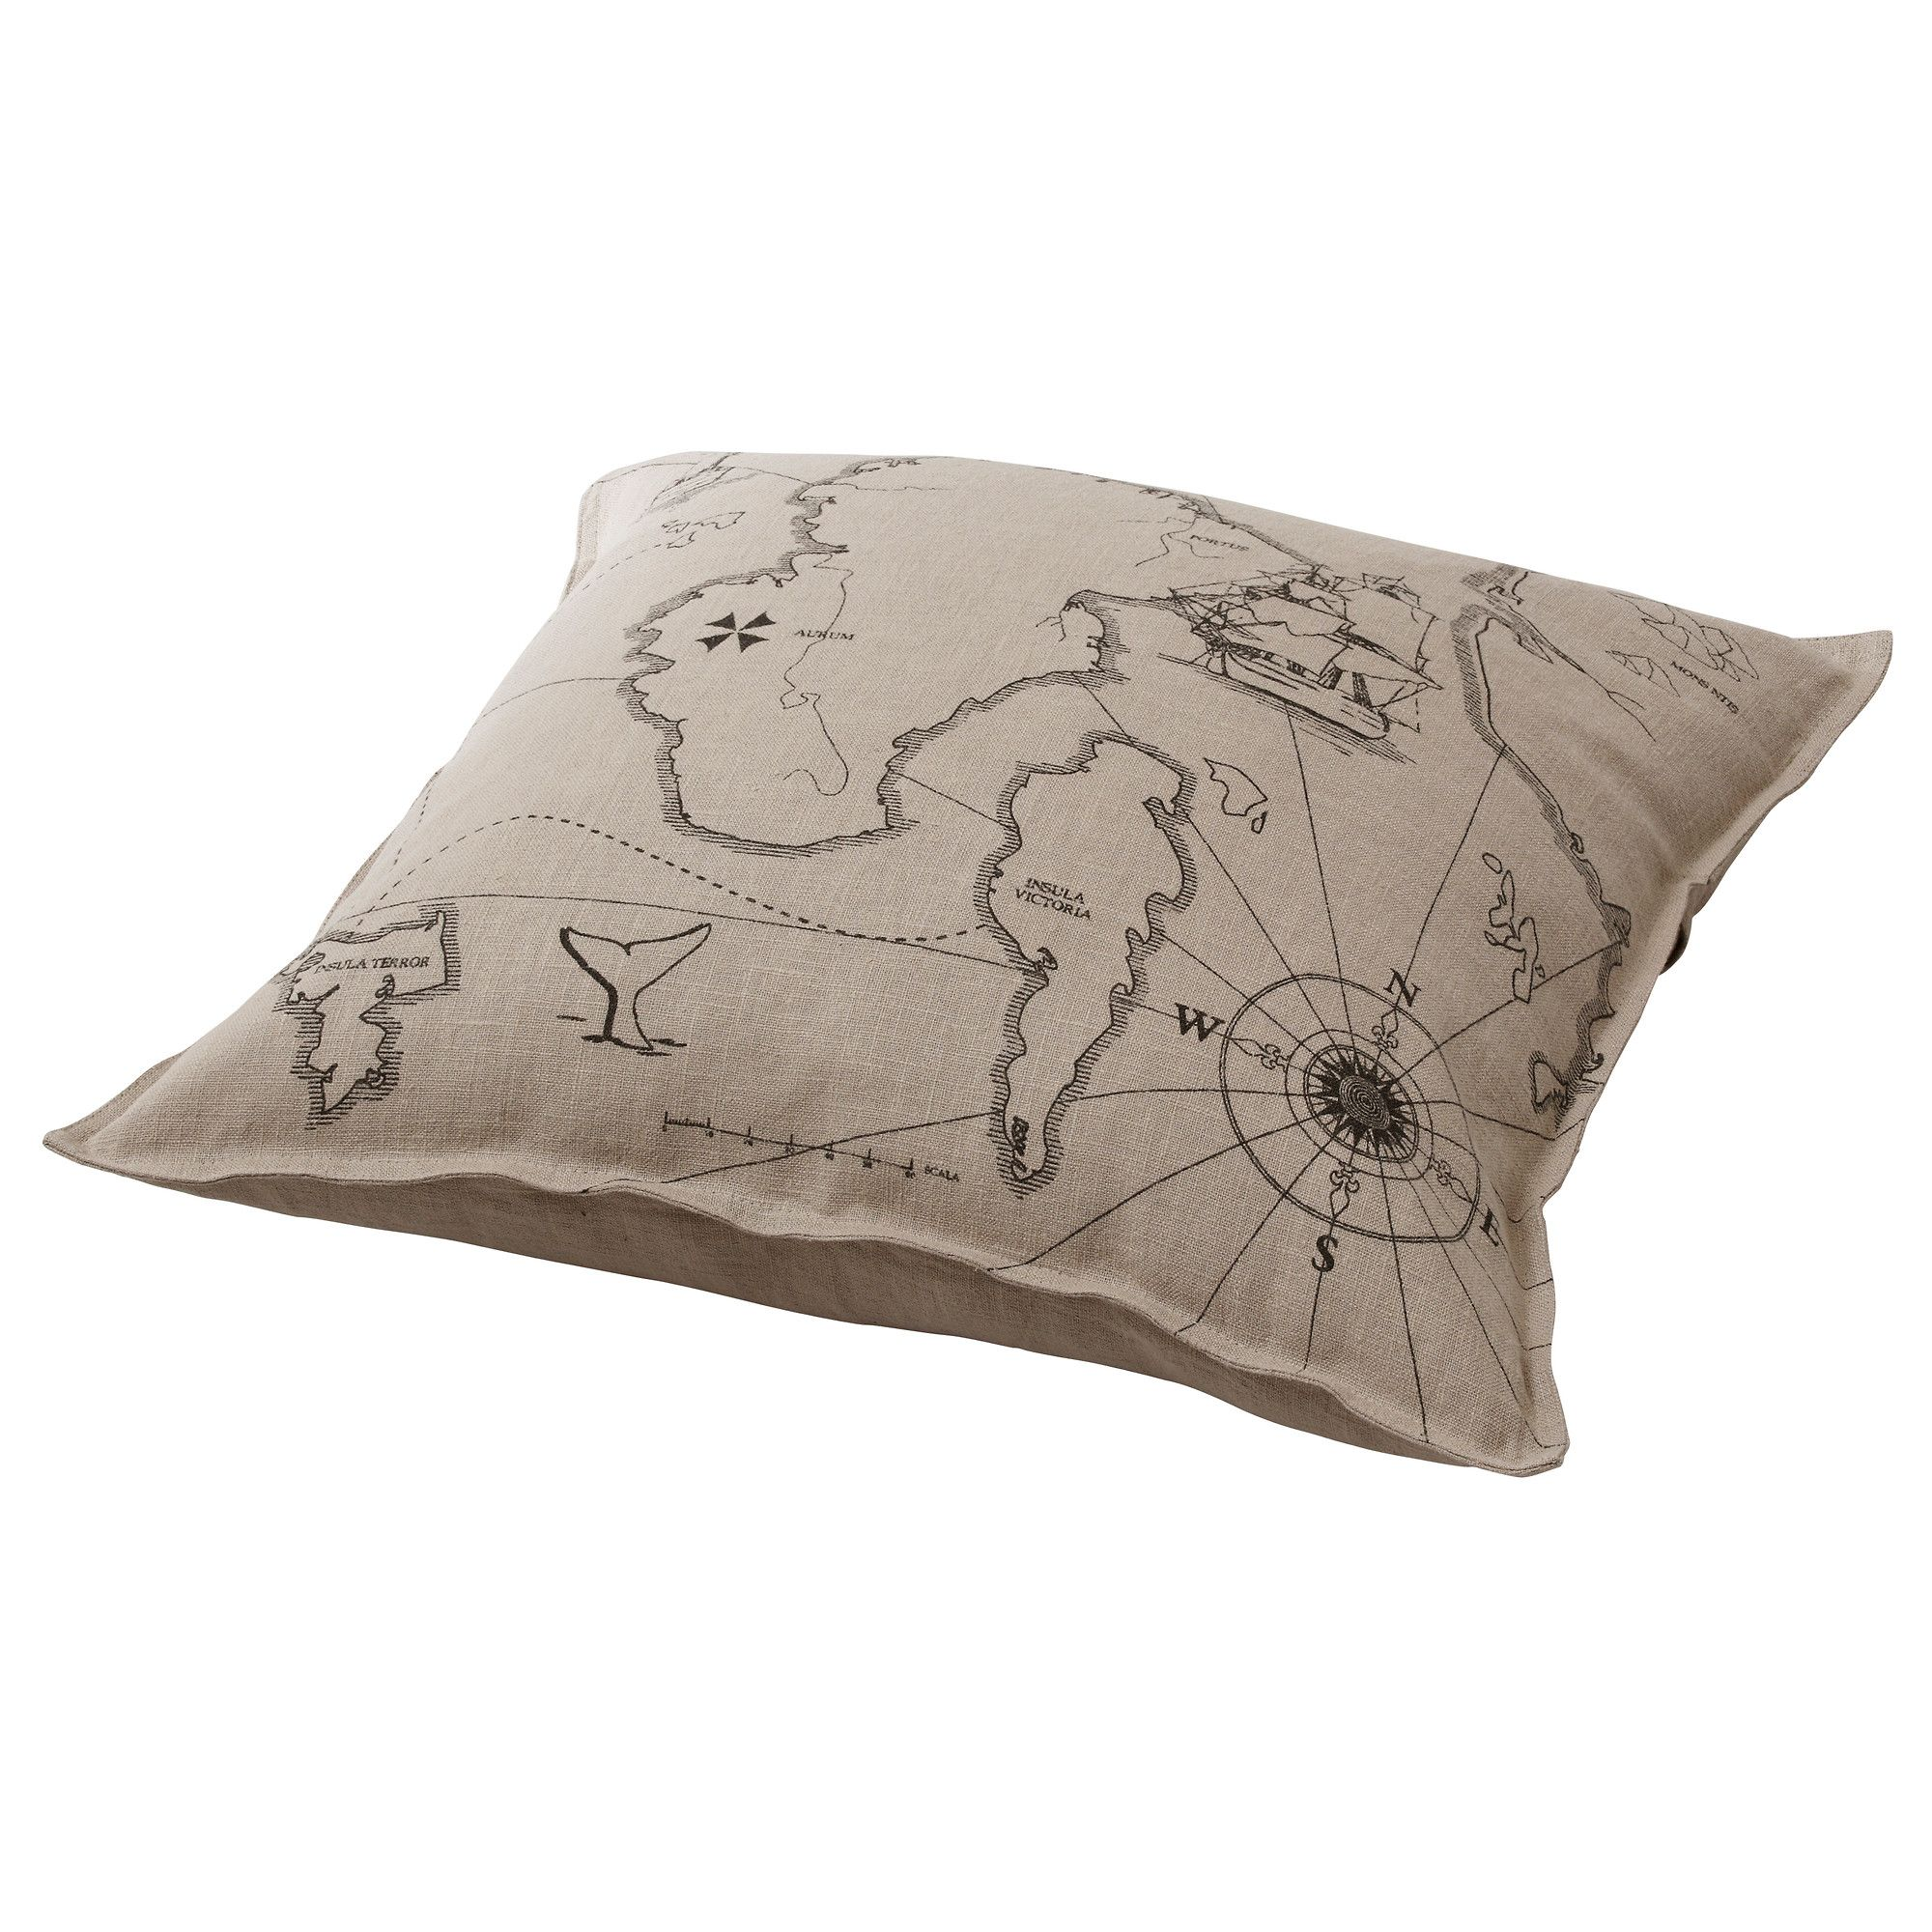 BENZY LAND Cushion